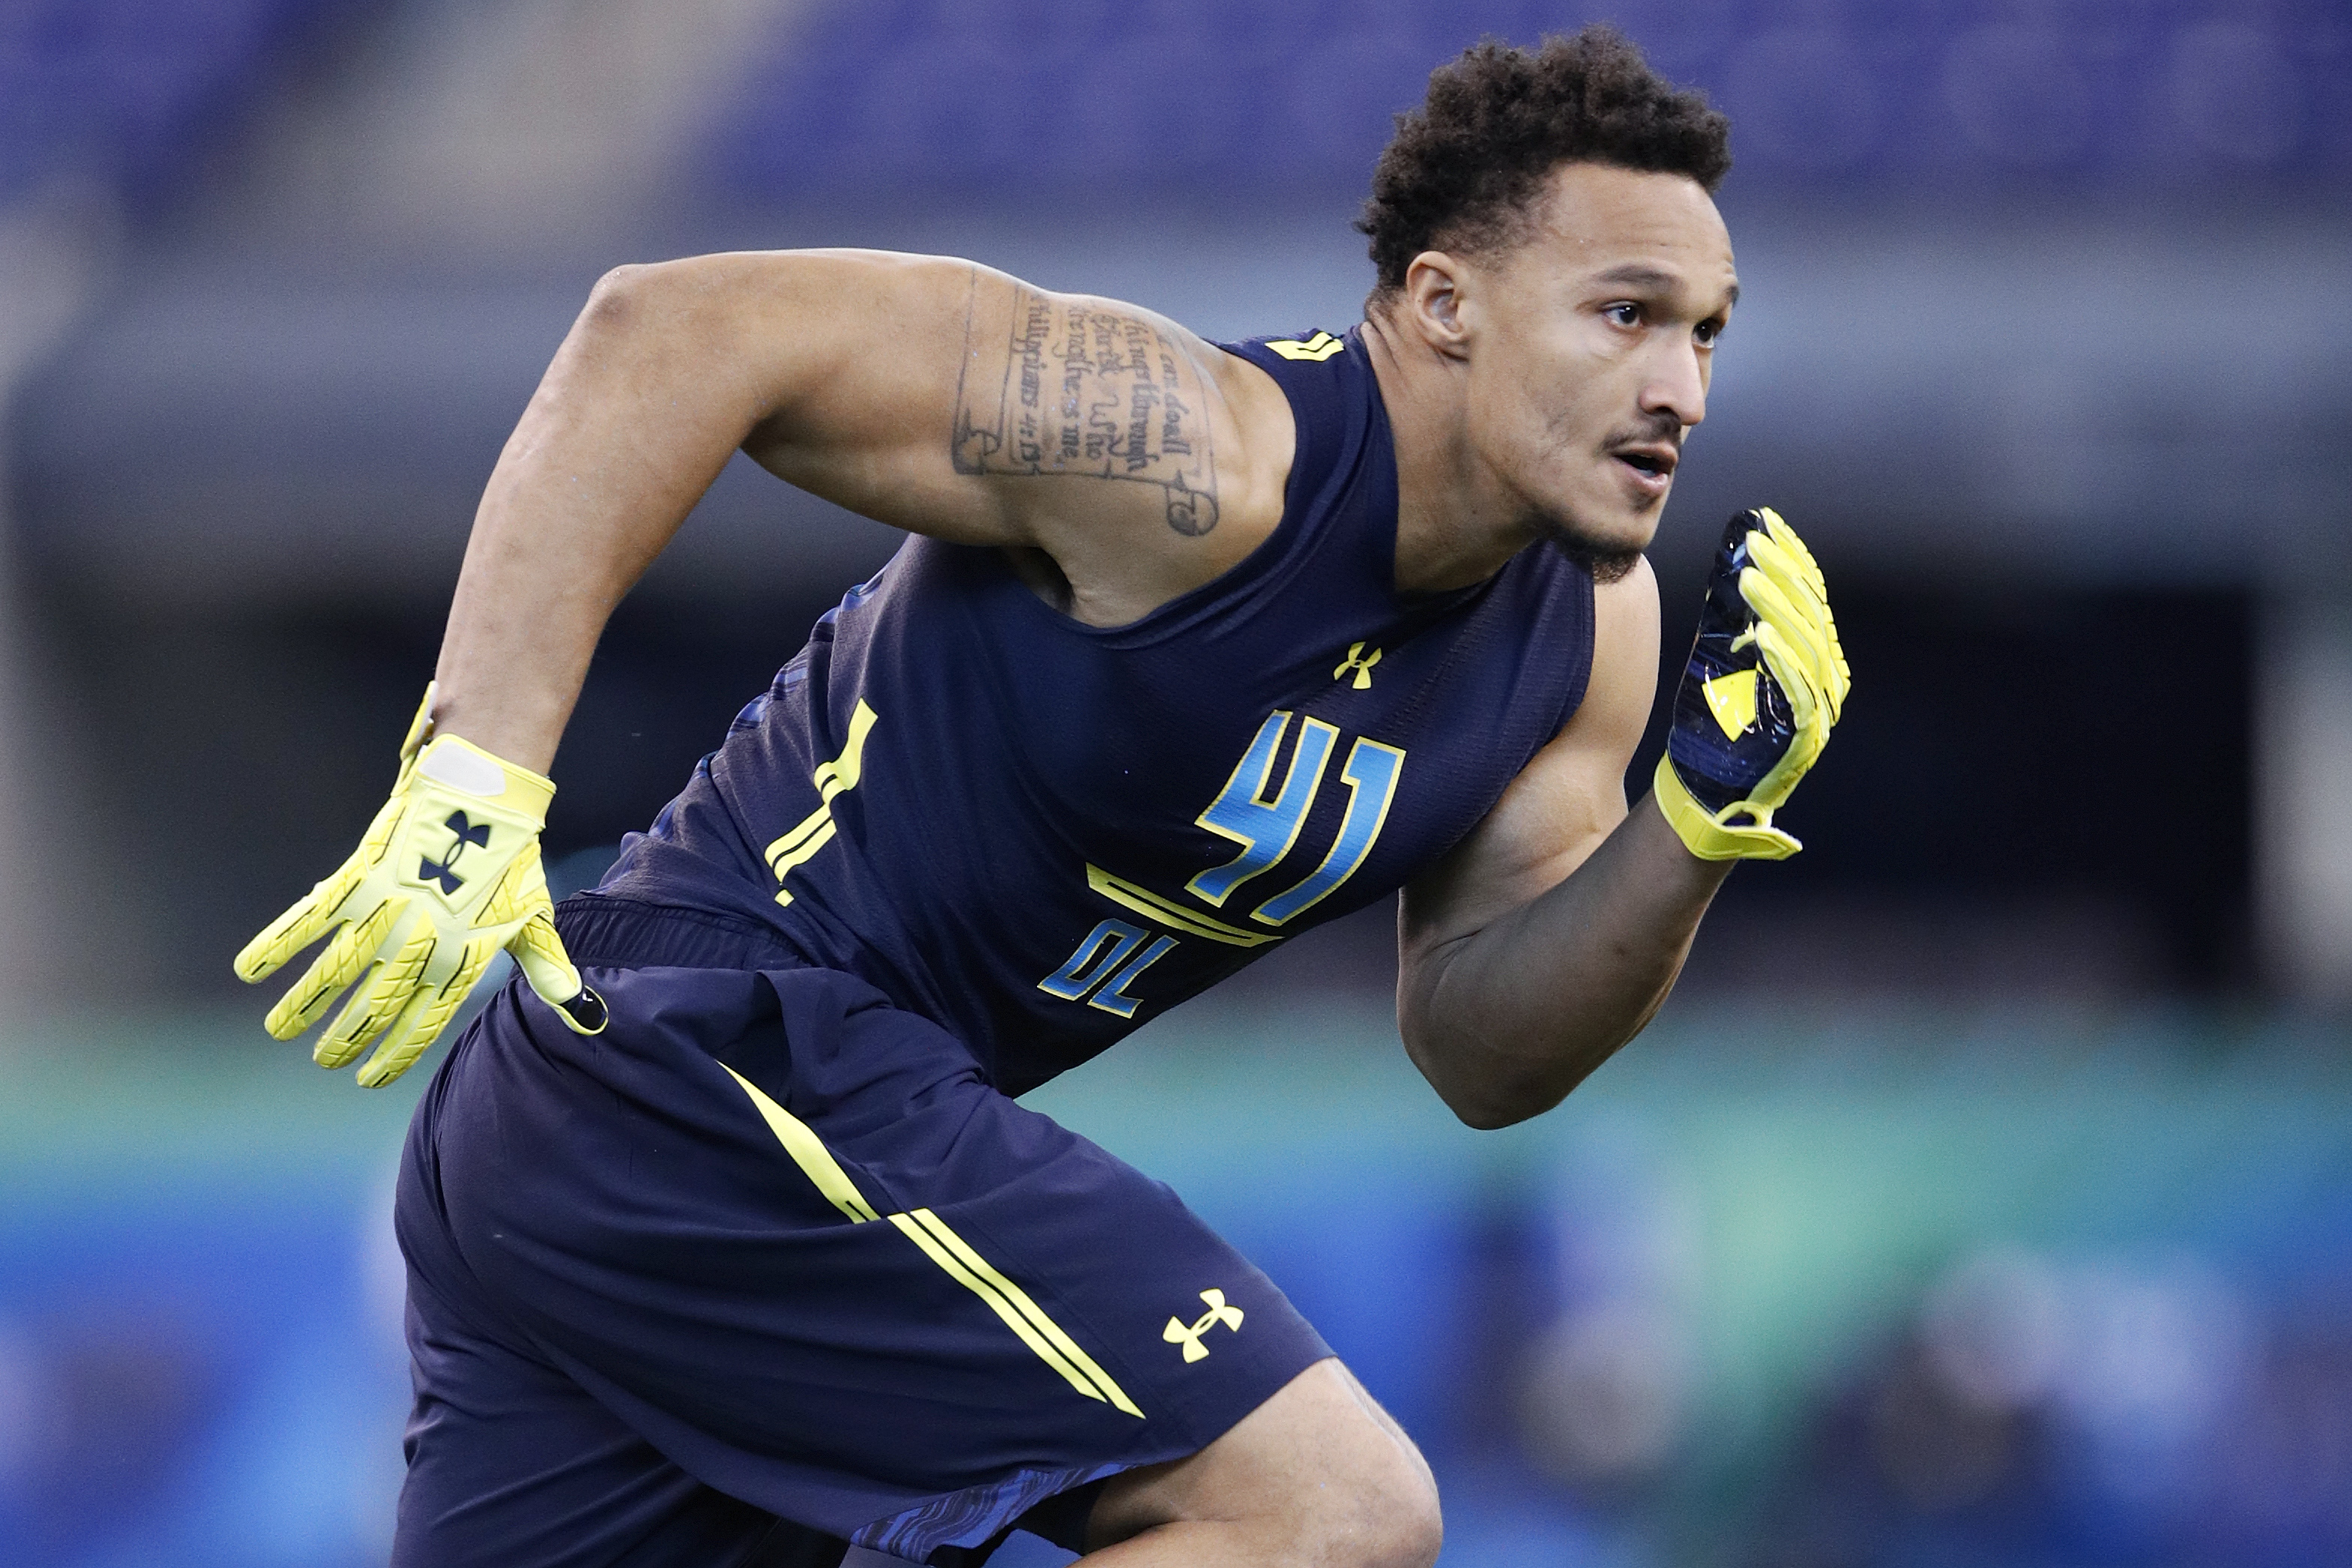 Derek Rivers' 14 sacks ranked second in the nation in 2016. (Getty Images)